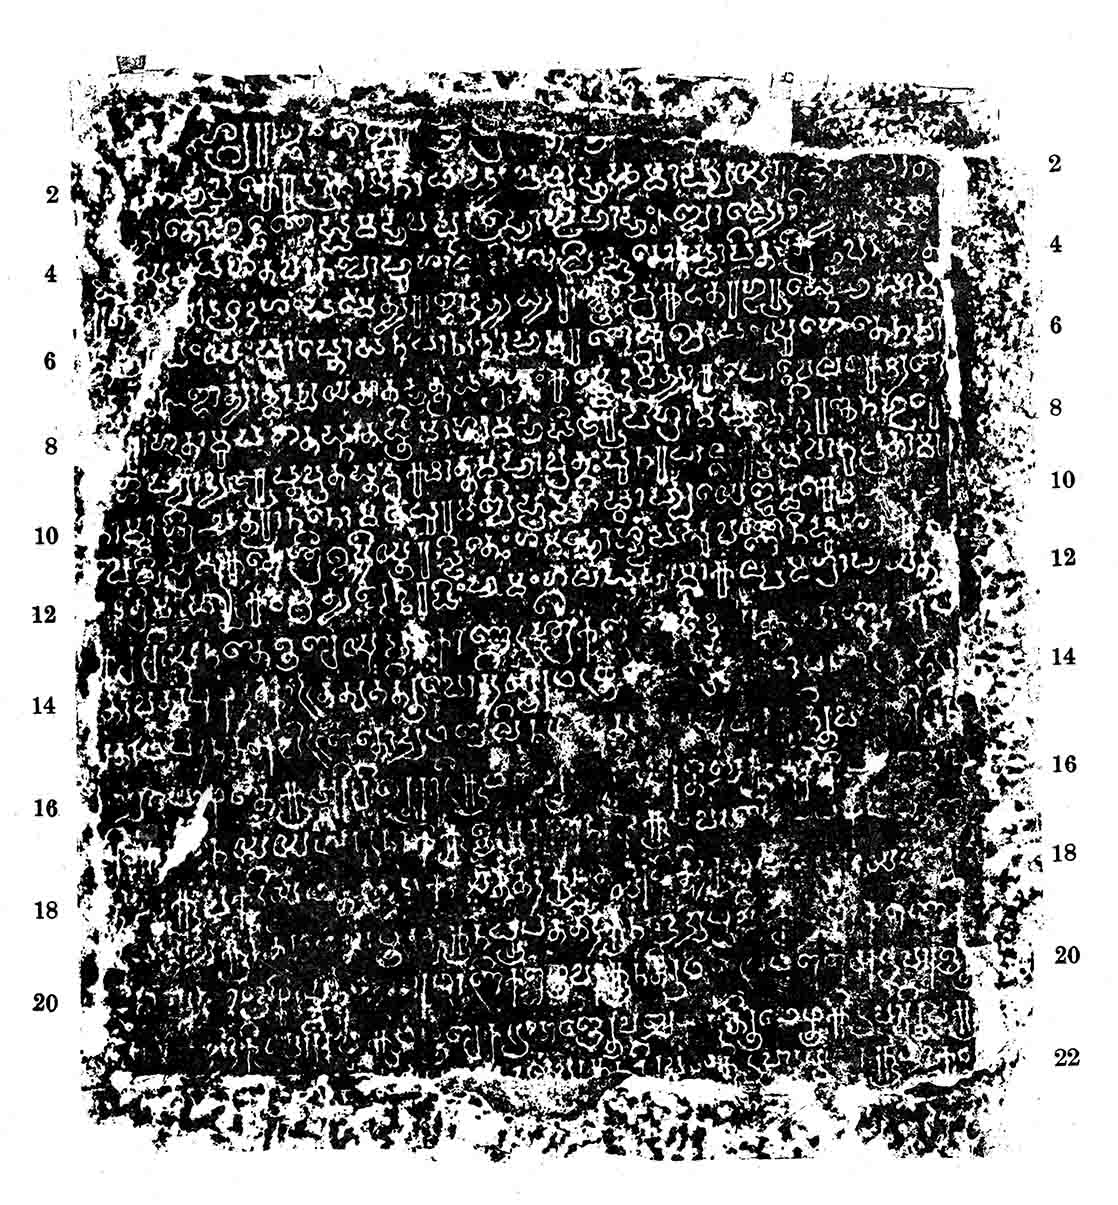 L'inscription de Vaḷabha « Caturānana » à Tiruvoṟṟiyūr (district de Tiruvallur, Tamil Nadu) : autobiographie en forme de parcours initiatique d'un guerrier devenu ascète